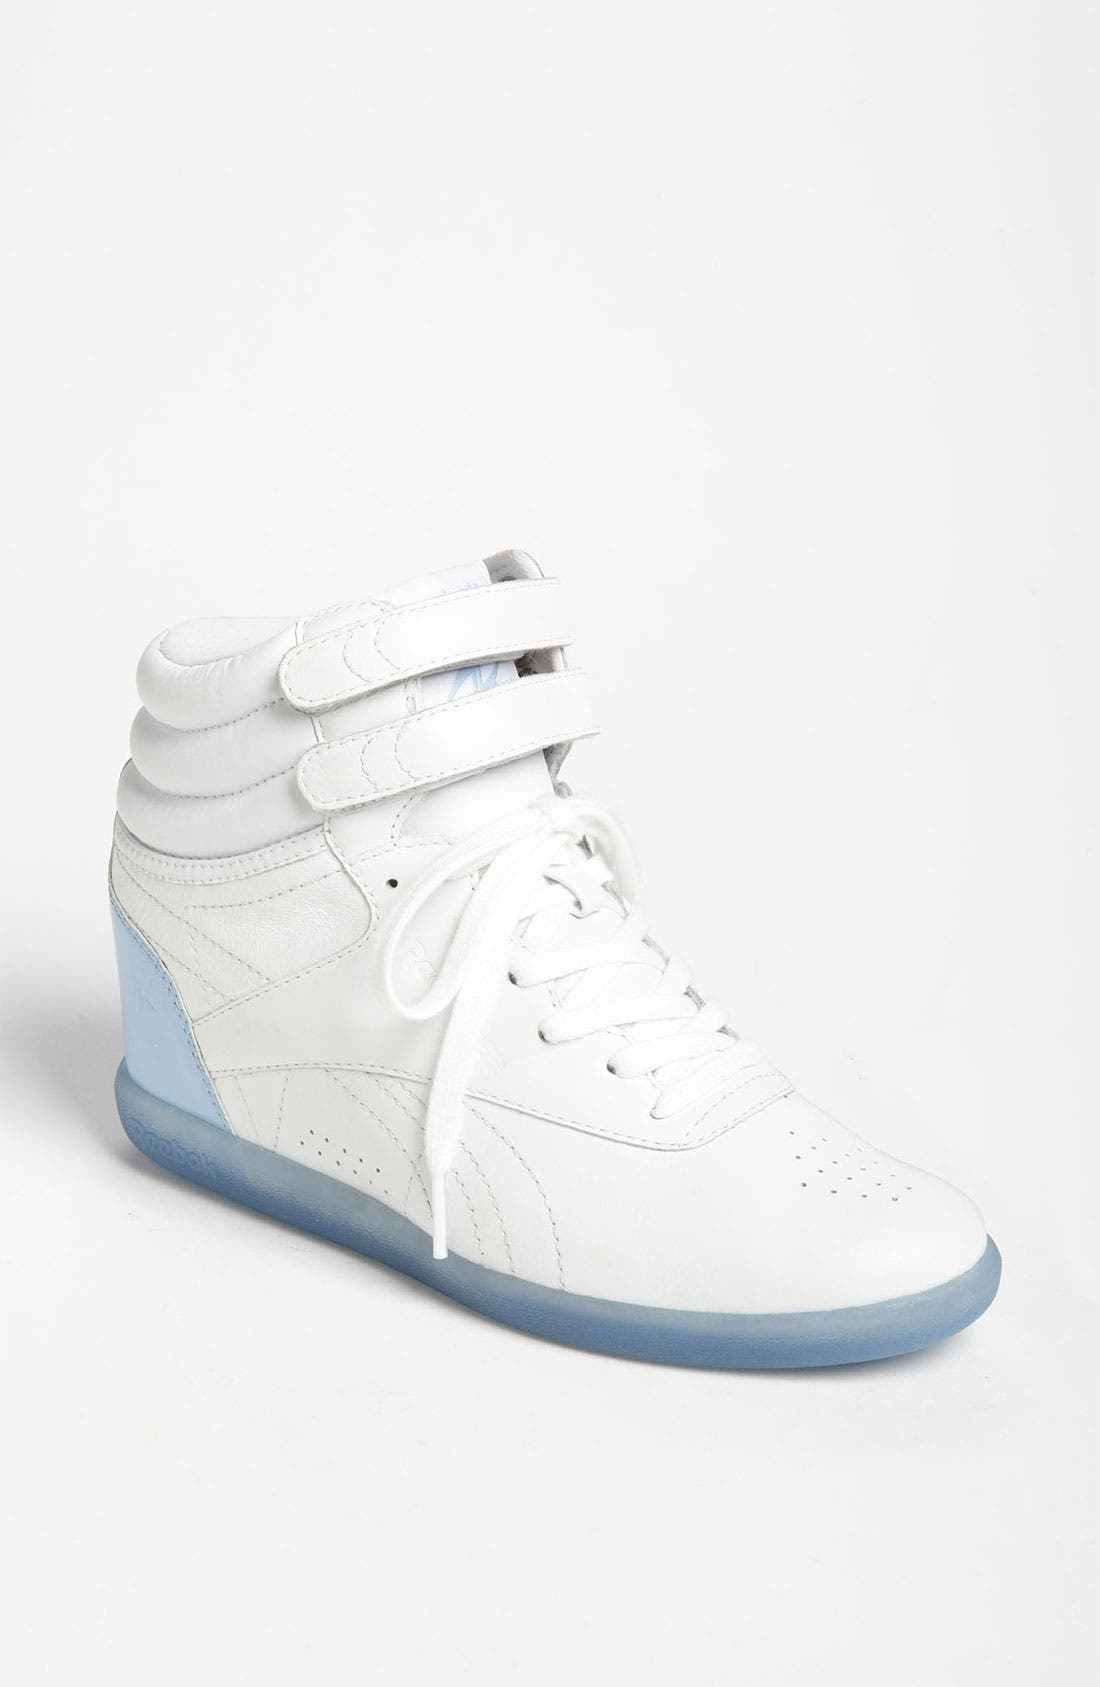 Alternate Image 1 Selected - Reebok 'Freestyle Hi Wedge A. Keys' Sneaker (Women)